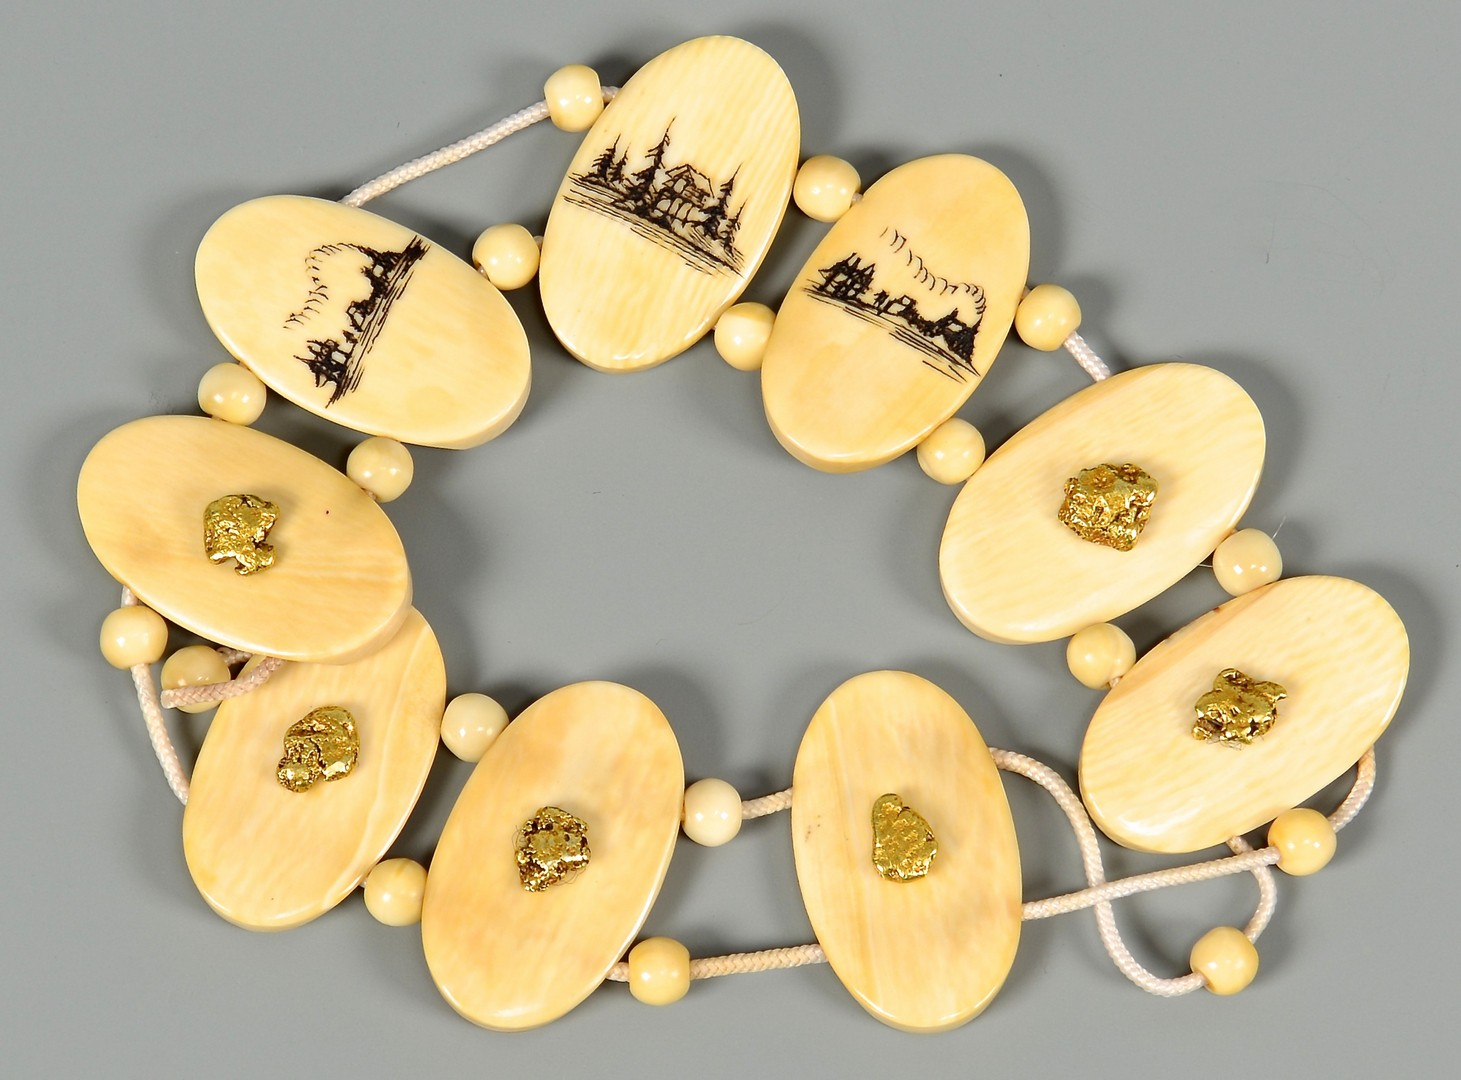 Lot 4010144: Alaskan Scrimshaw Ivory & Gold Nugget Jewelry Set, Howard Weyahok